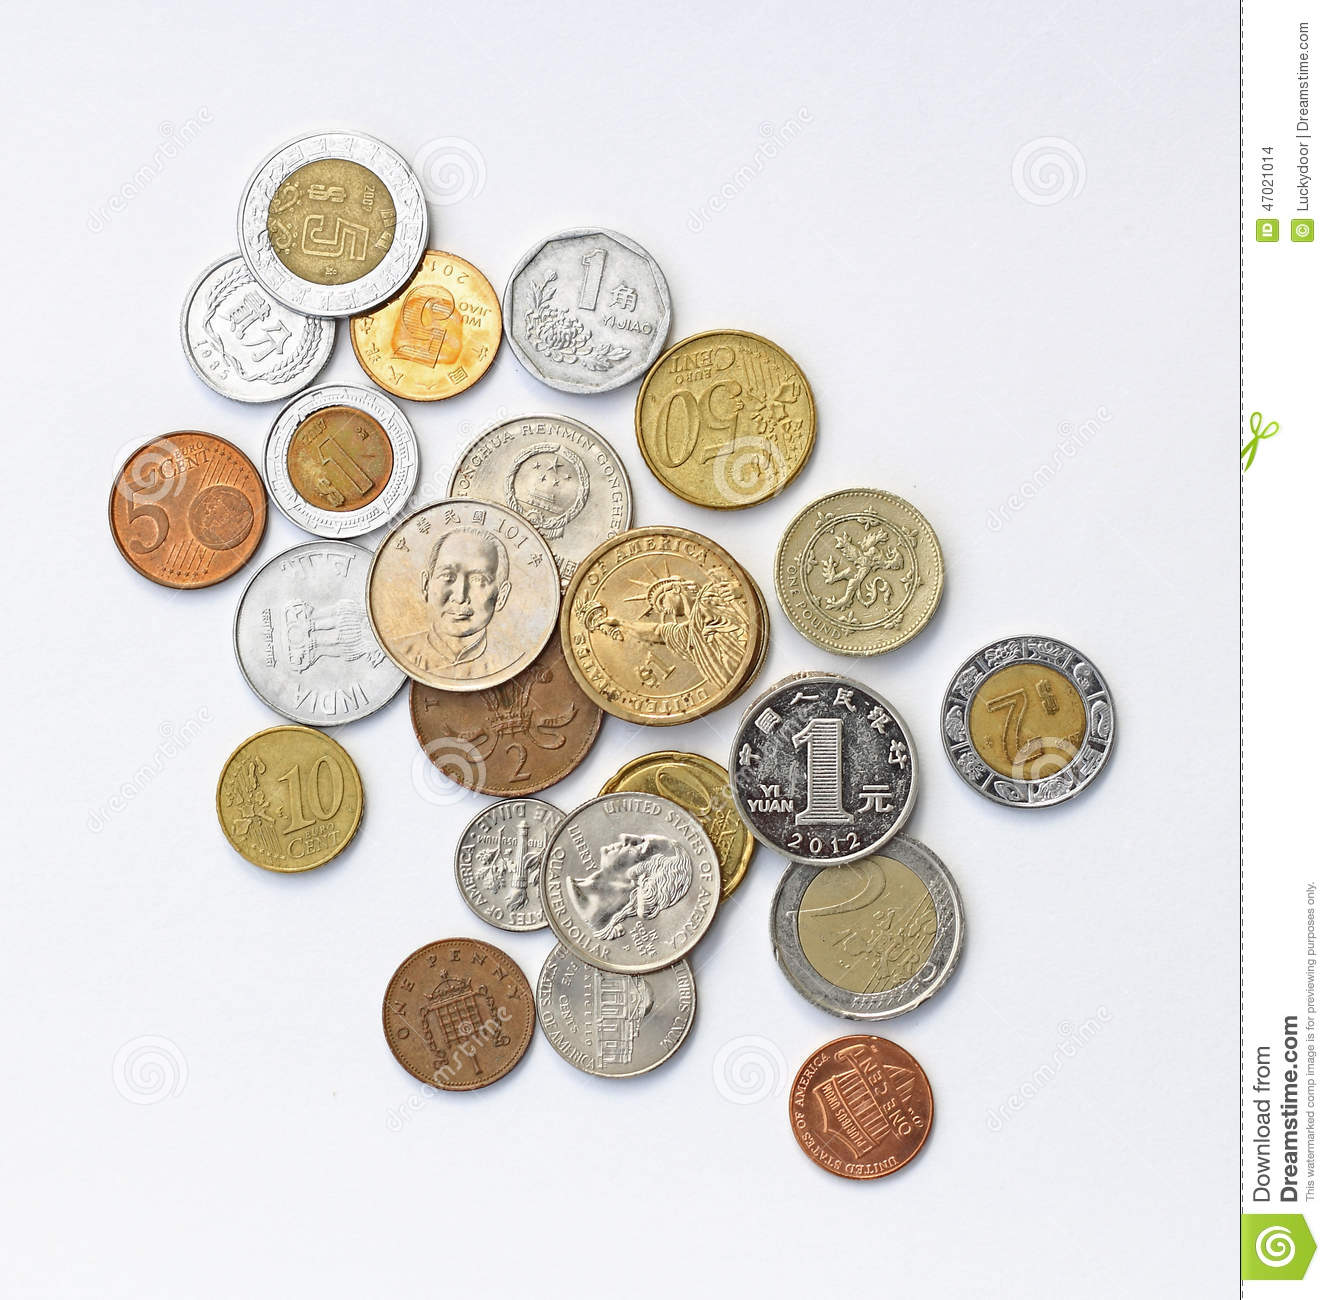 International Coins stock photo  Image of mexican, money